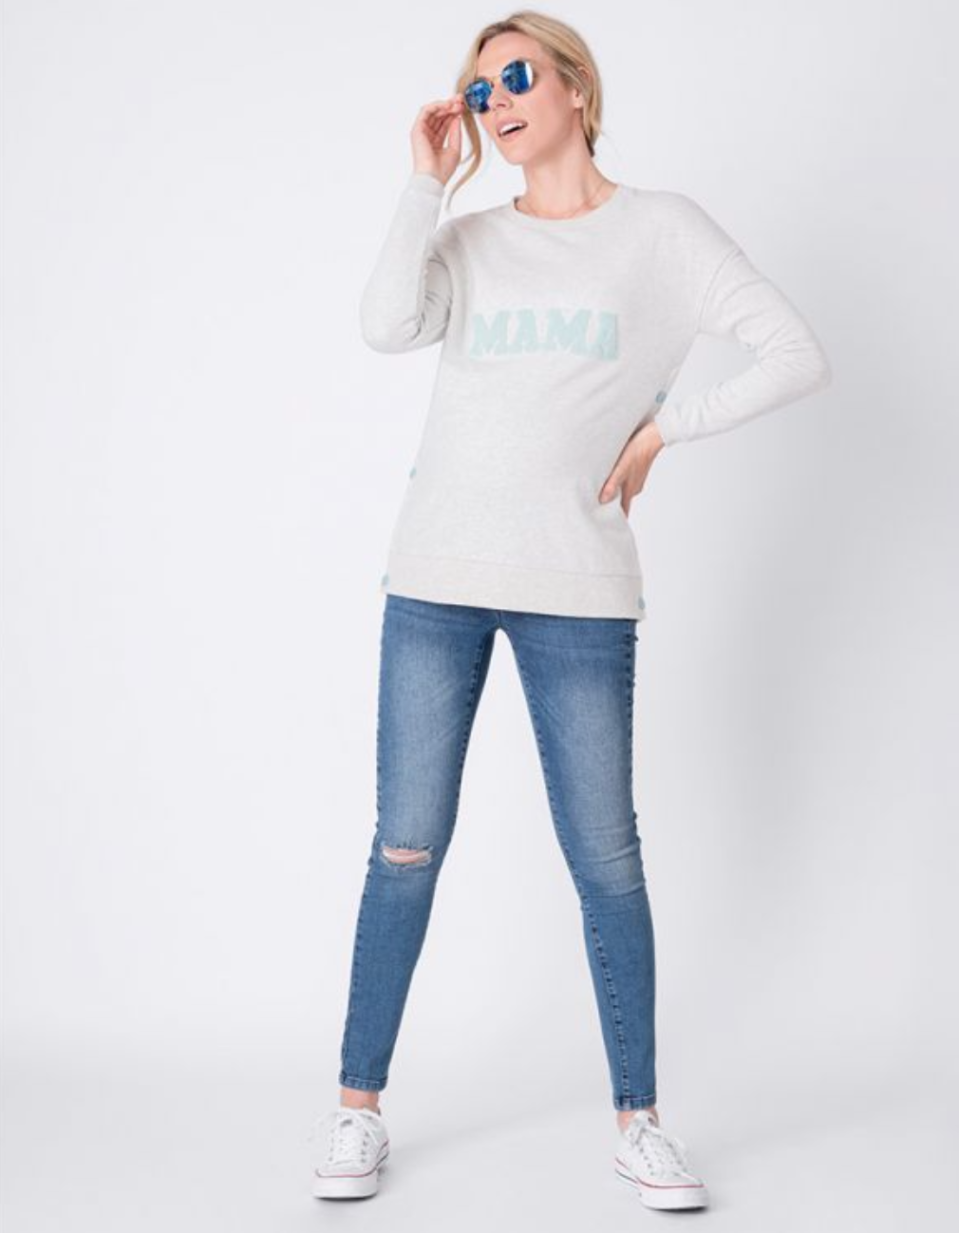 """<p>Another brand with a bridal and occasionwear offering - <a href=""""https://www.seraphine.com/en-gb/maternity-clothes/"""" rel=""""nofollow noopener"""" target=""""_blank"""" data-ylk=""""slk:Séraphine"""" class=""""link rapid-noclick-resp"""">Séraphine</a> is known for flattering, easy-wear wrap <a href=""""https://www.seraphine.com/en-gb/maternity-clothes/maternity-dresses/"""" rel=""""nofollow noopener"""" target=""""_blank"""" data-ylk=""""slk:dresses"""" class=""""link rapid-noclick-resp"""">dresses</a> and more (we love their <a href=""""https://www.seraphine.com/en-gb/maternity-clothes/maternity-sportswear-activewear/"""" rel=""""nofollow noopener"""" target=""""_blank"""" data-ylk=""""slk:activewear"""" class=""""link rapid-noclick-resp"""">activewear</a> too). And if you want a royal seal of approval, the <a href=""""https://www.womenshealthmag.com/uk/search/?q=kate+middleton"""" rel=""""nofollow noopener"""" target=""""_blank"""" data-ylk=""""slk:Kate Middleton"""" class=""""link rapid-noclick-resp"""">Kate Middleton</a> – the Duchess of elegant pregnancies – was spotted regularly in the brand when pregnant with Prince George. </p><p>For everyday dressing? The mid-range prices but great quality means you can splash out on a few practically perfect separates (like this <a href=""""https://www.seraphine.com/en-gb/mama-and-mini-sweatshirts/"""" rel=""""nofollow noopener"""" target=""""_blank"""" data-ylk=""""slk:MAMA"""" class=""""link rapid-noclick-resp"""">MAMA</a> knit) and keep them on rotation for months.</p><p><a class=""""link rapid-noclick-resp"""" href=""""https://go.redirectingat.com?id=127X1599956&url=https%3A%2F%2Fwww.seraphine.com%2Fen-gb%2Fmaternity-clothes%2F&sref=https%3A%2F%2Fwww.womenshealthmag.com%2Fuk%2Fhealth%2Fg36261049%2F16-best-maternity-clothes-and-brands-for-trendy-bumps%2F"""" rel=""""nofollow noopener"""" target=""""_blank"""" data-ylk=""""slk:SHOP NOW"""">SHOP NOW</a></p>"""